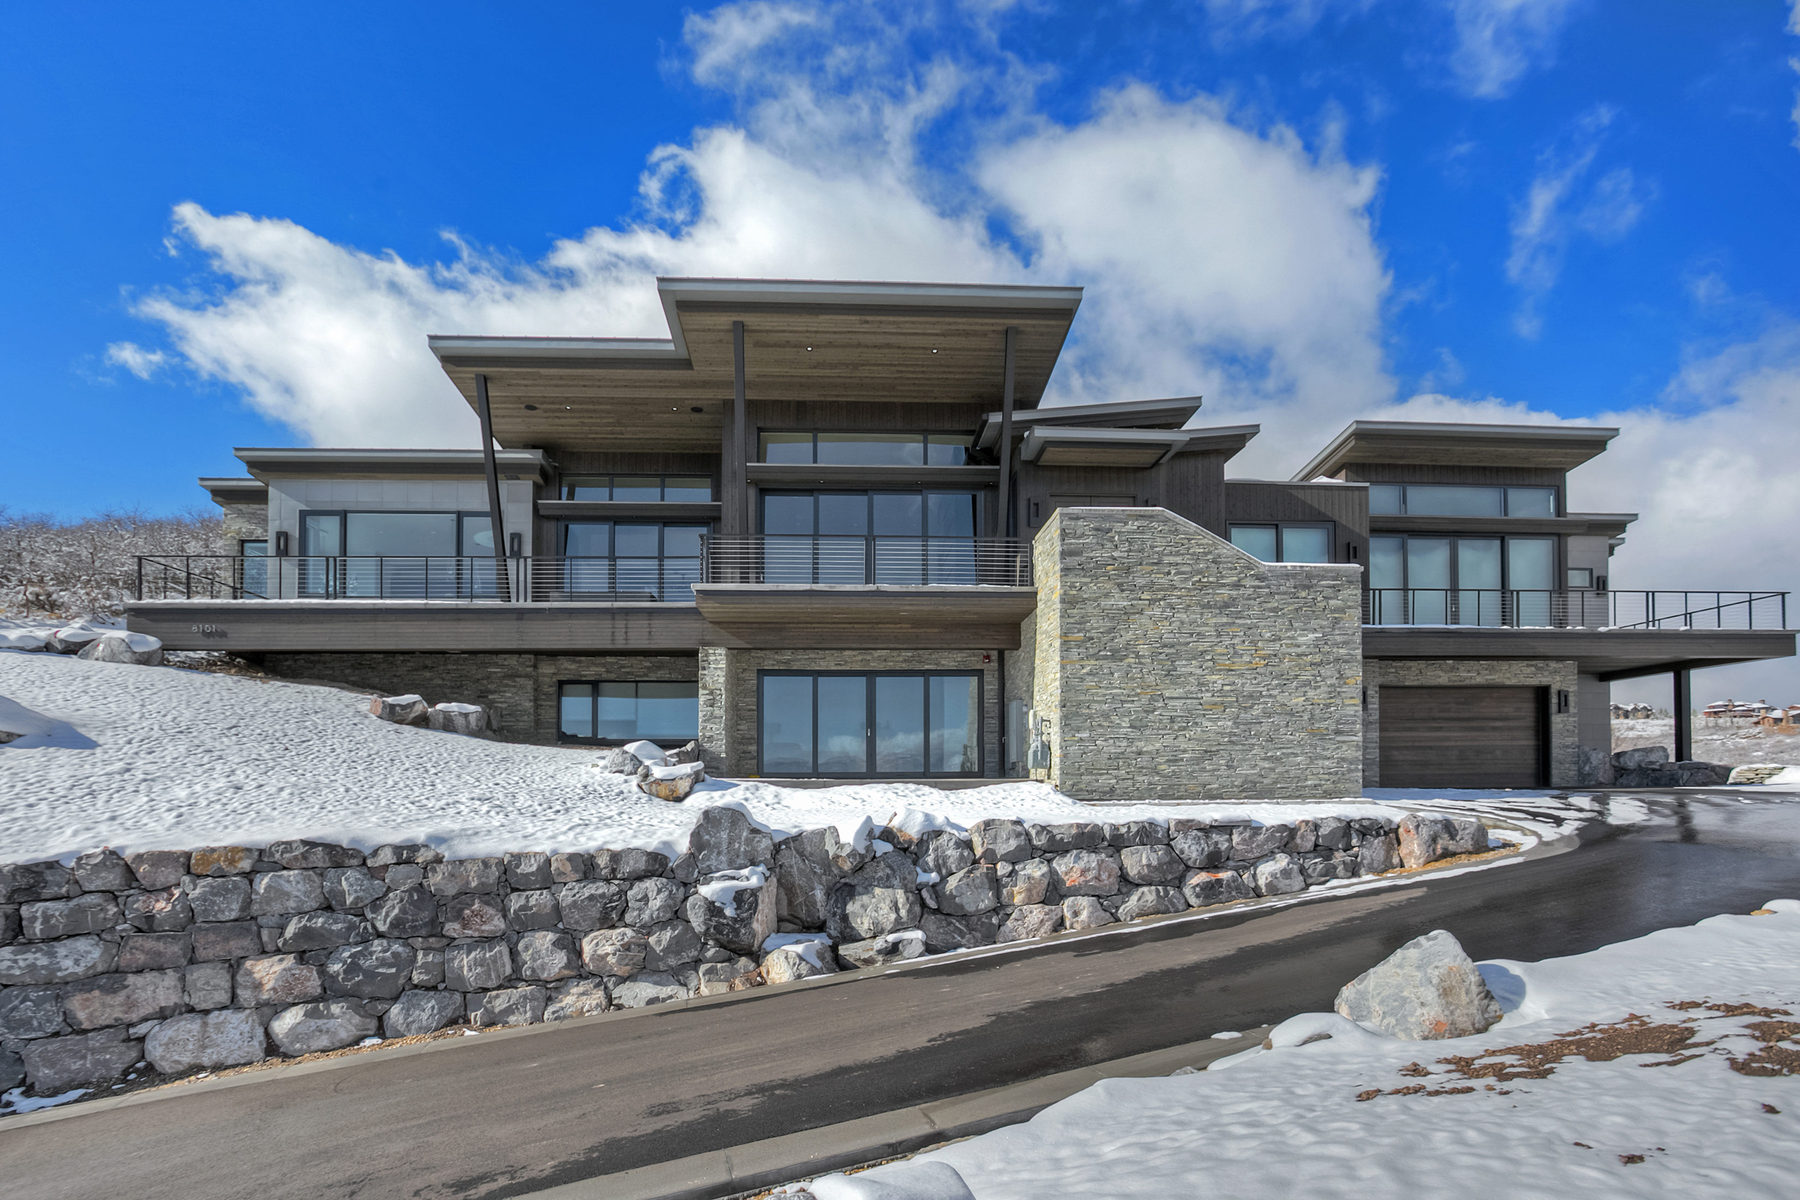 Casa Unifamiliar por un Venta en Mountain Modern Masterpiece! 8101 N Sunrise Loop Park City, Utah 84098 Estados Unidos